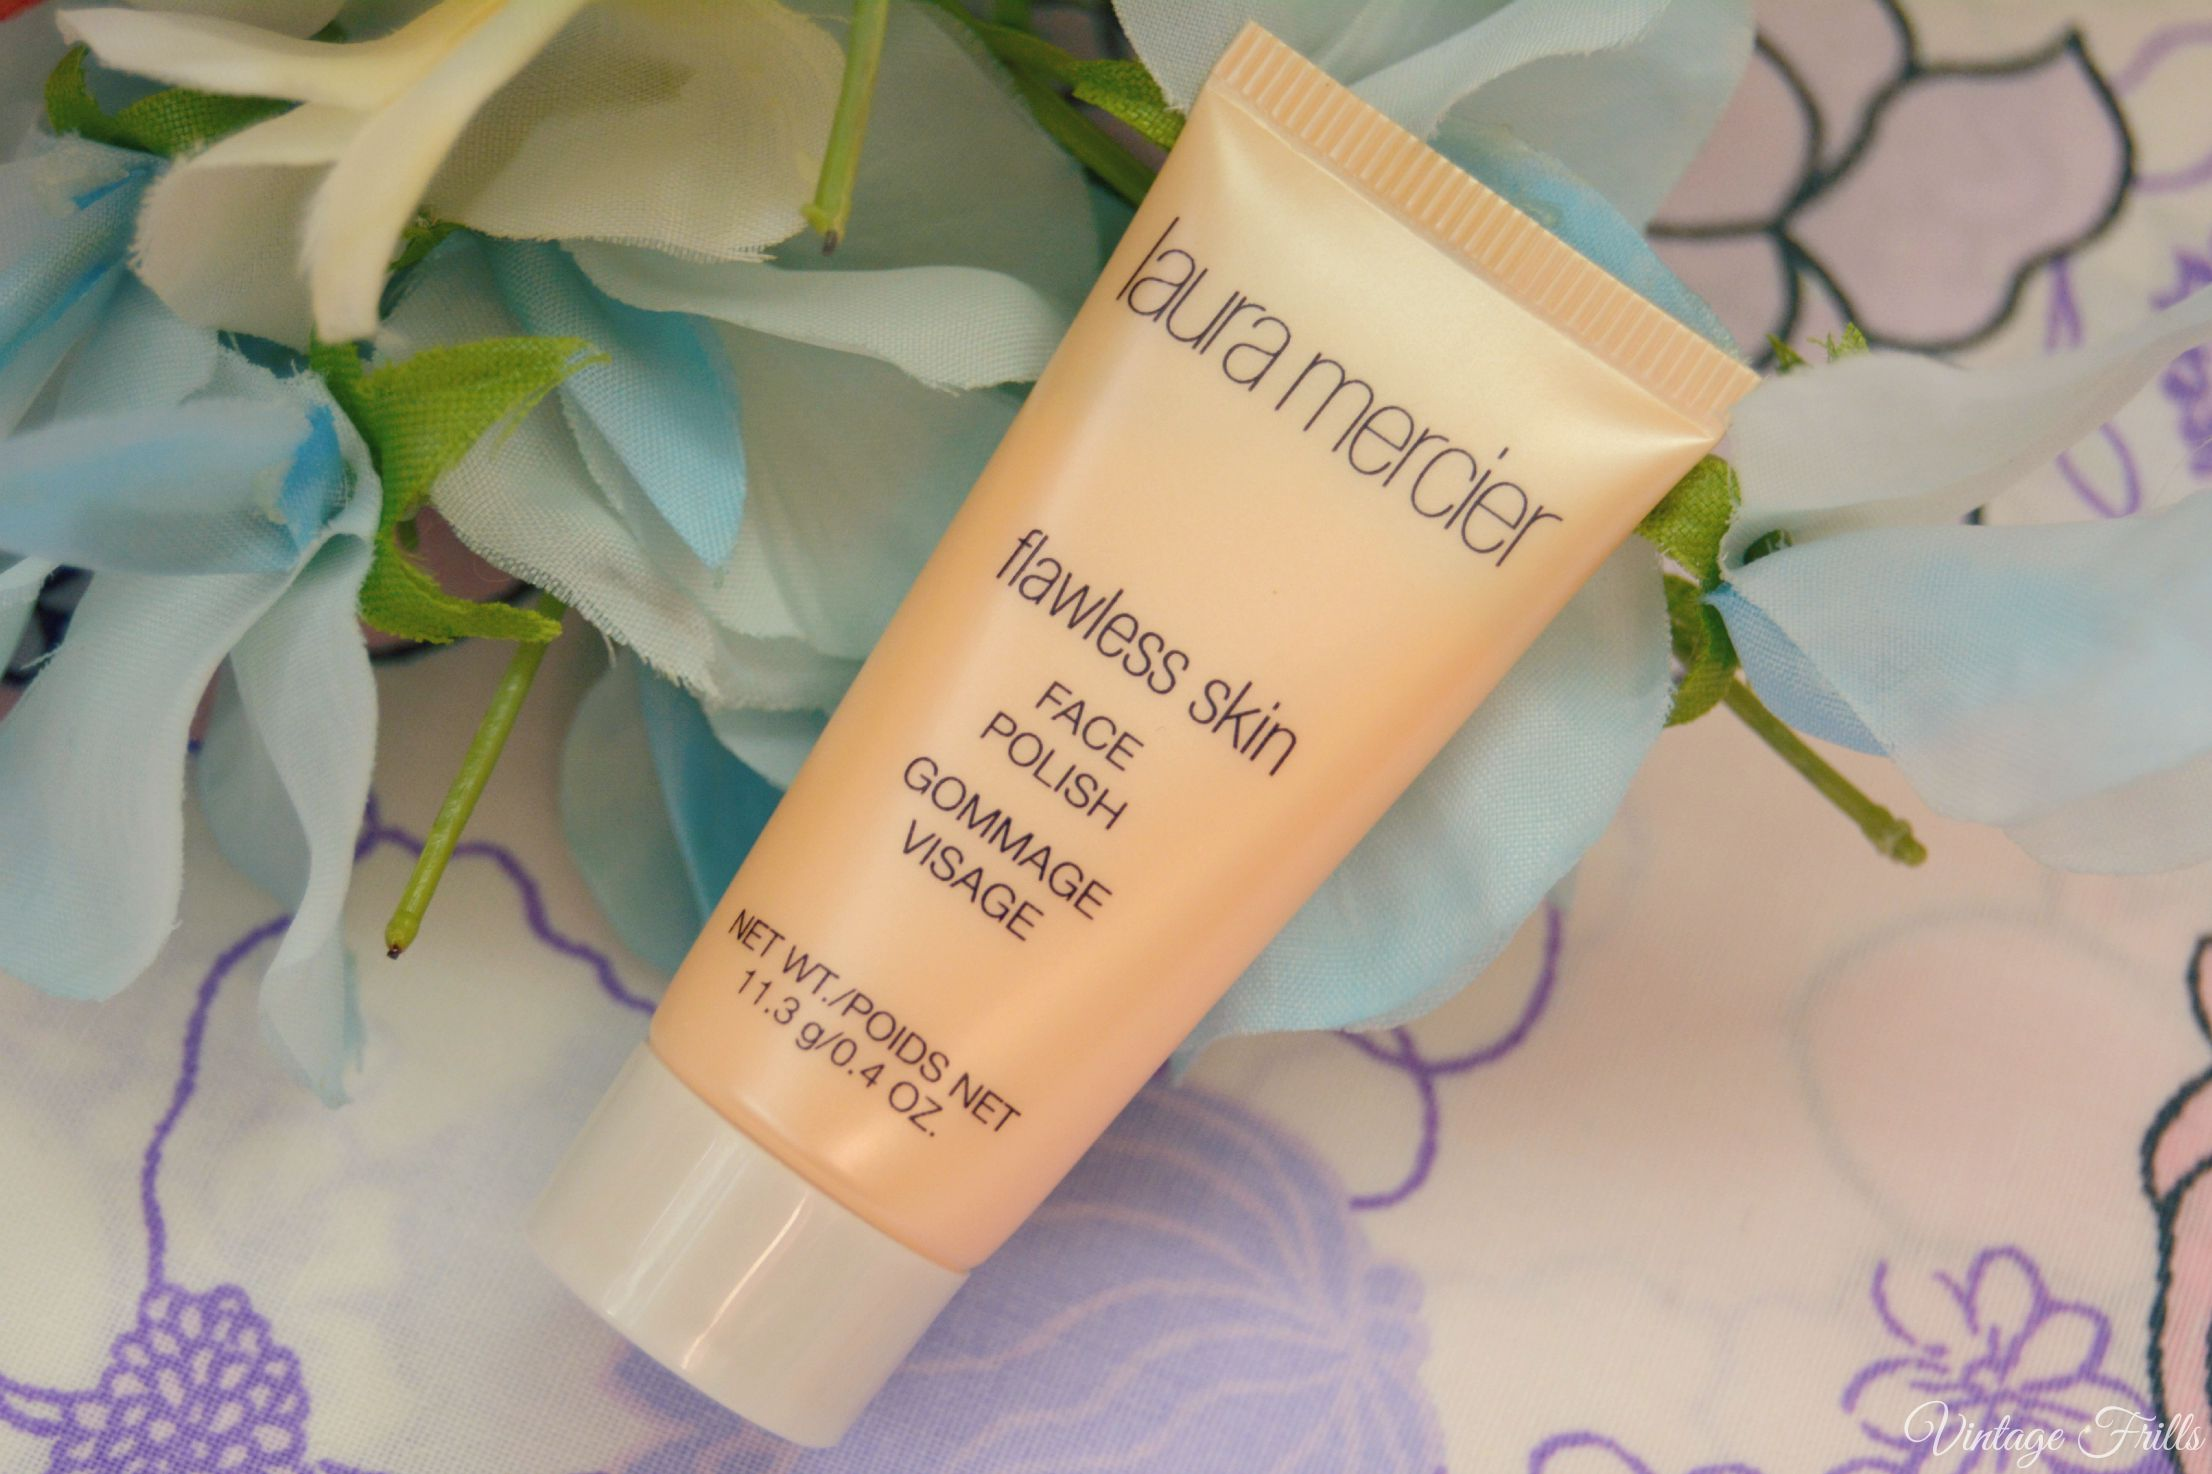 September Birchbox Laura Mercier Flawless Skin face Polish